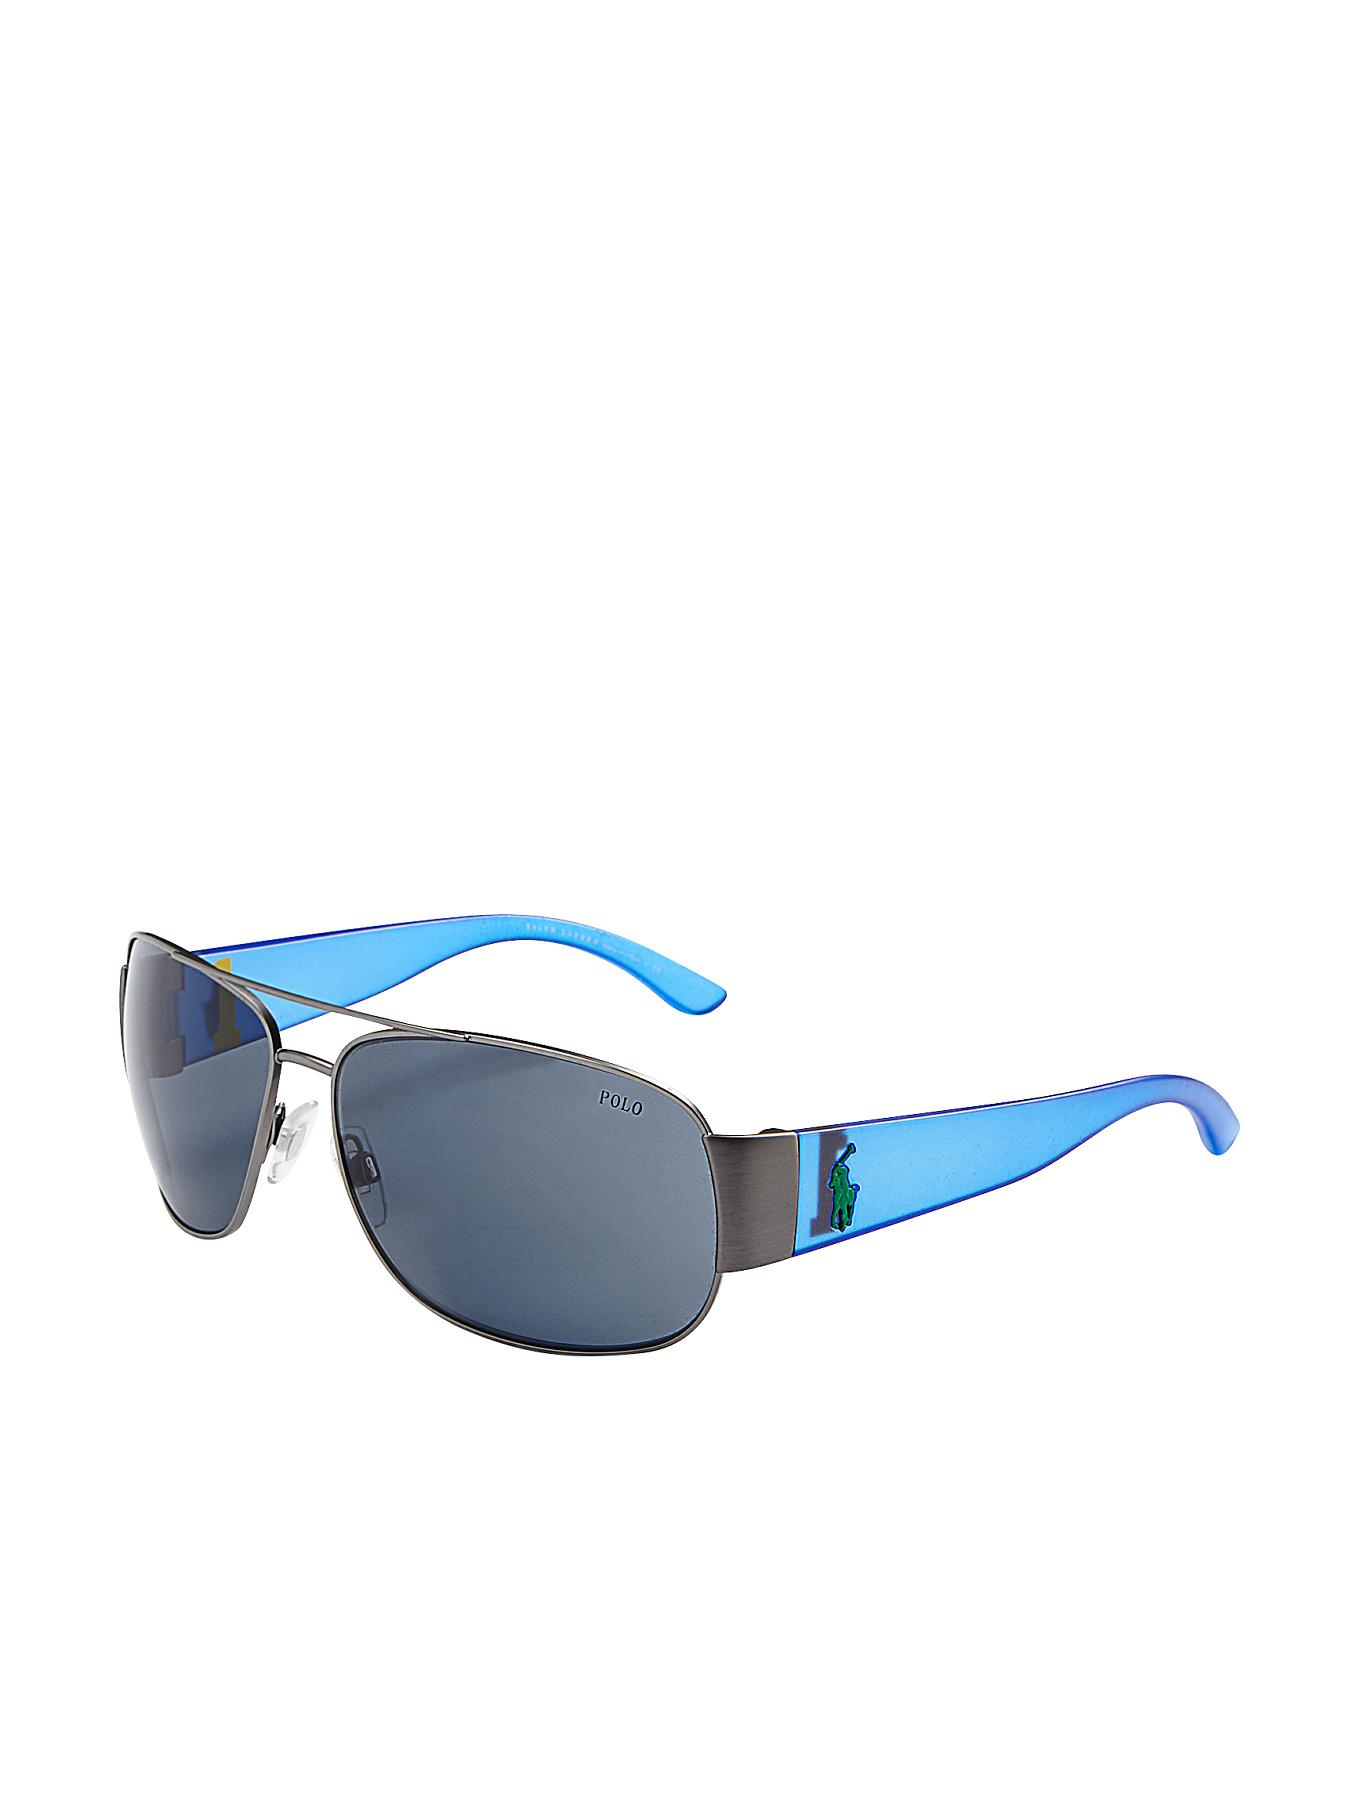 Polo Ralph Lauren Sunglasses - Gunmetal